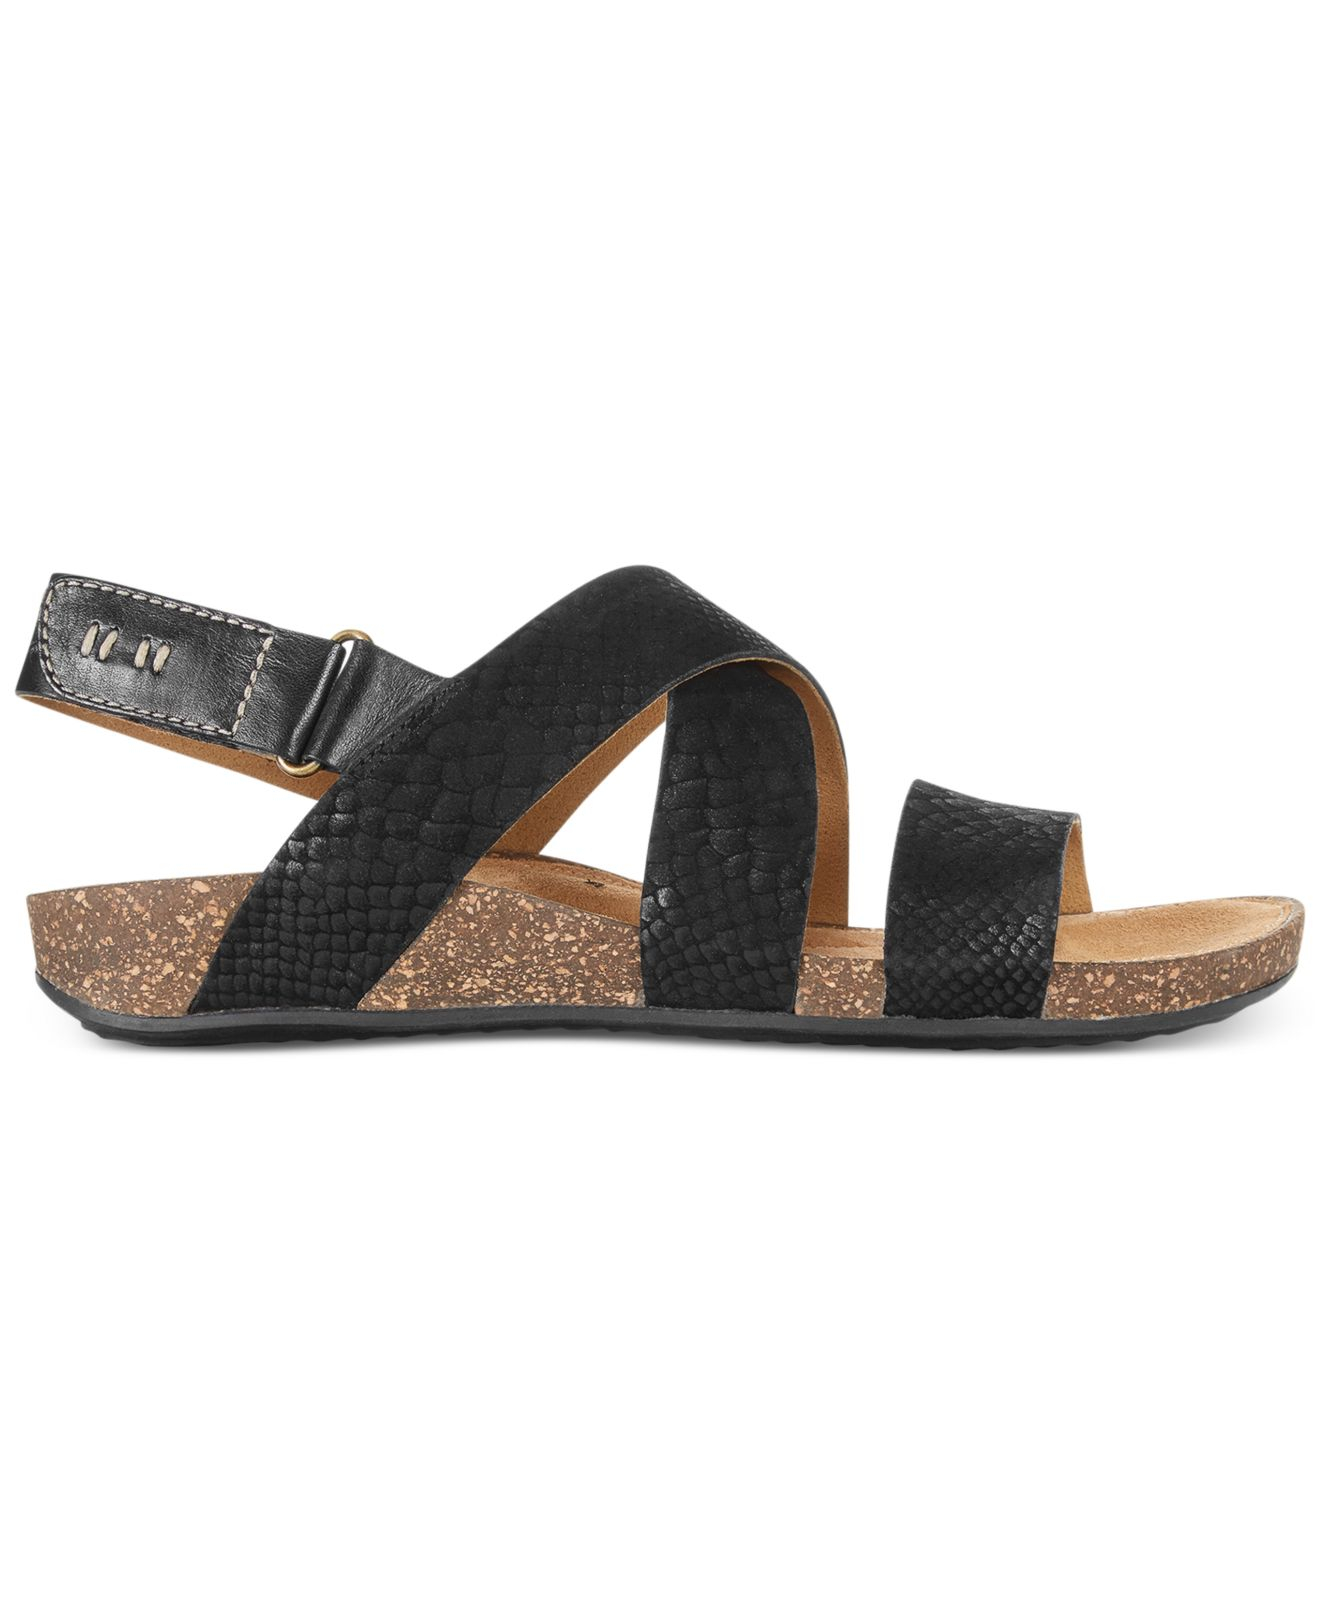 8e5c62a94 Lyst - Clarks Artisan Women s Perri Dunes Footbed Sandals in Black